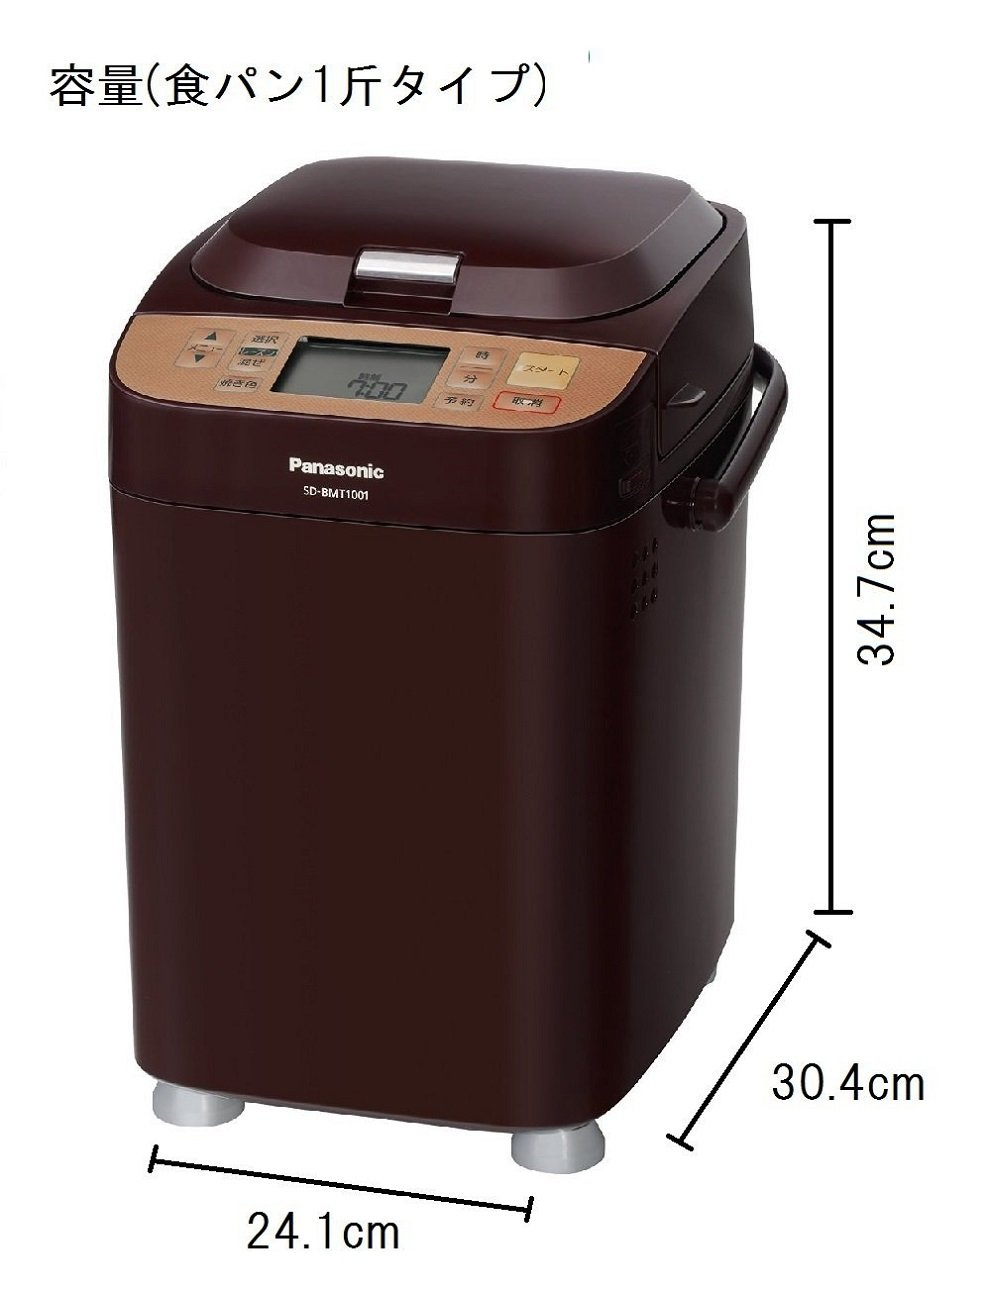 Panasonic home bakery 1 loaf type Brown SD-BMT1001-T--(Japan Import-No Warranty) by Panasonic (Image #2)